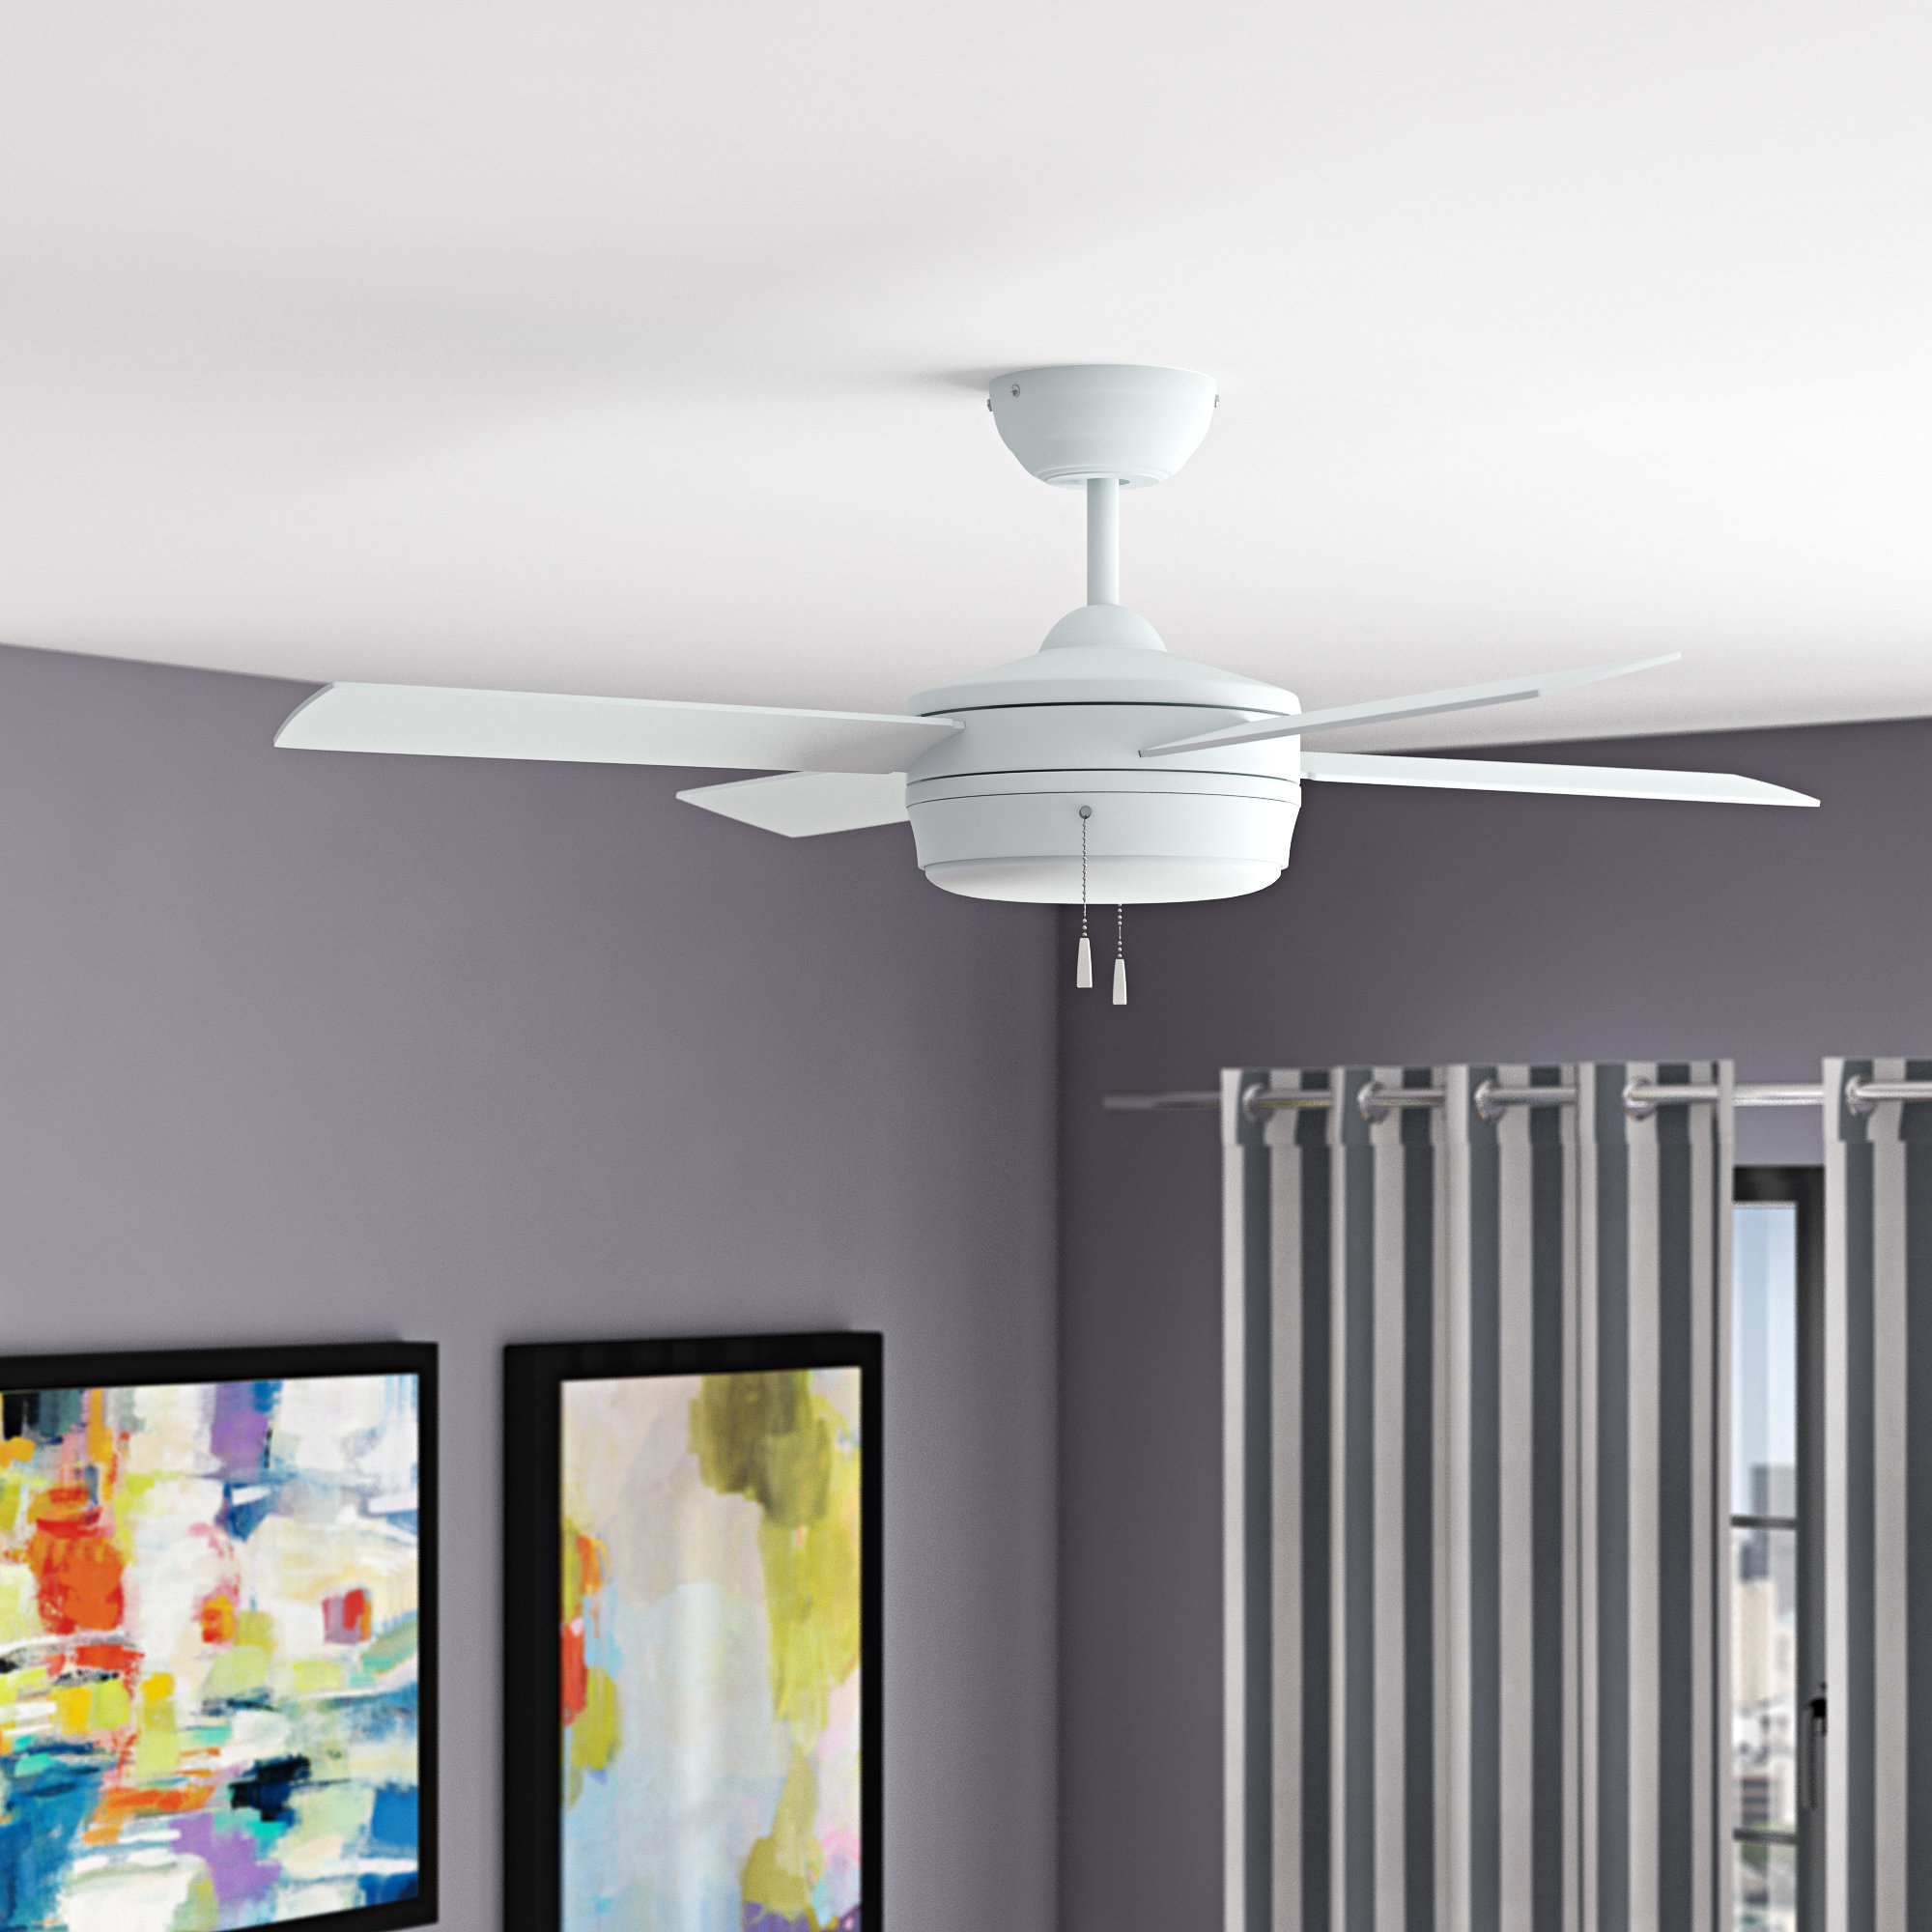 "Moriarty 44"" 4 Blade Ceiling Fan Throughout Most Recently Released Stewardson 4 Blade Ceiling Fans (View 5 of 20)"